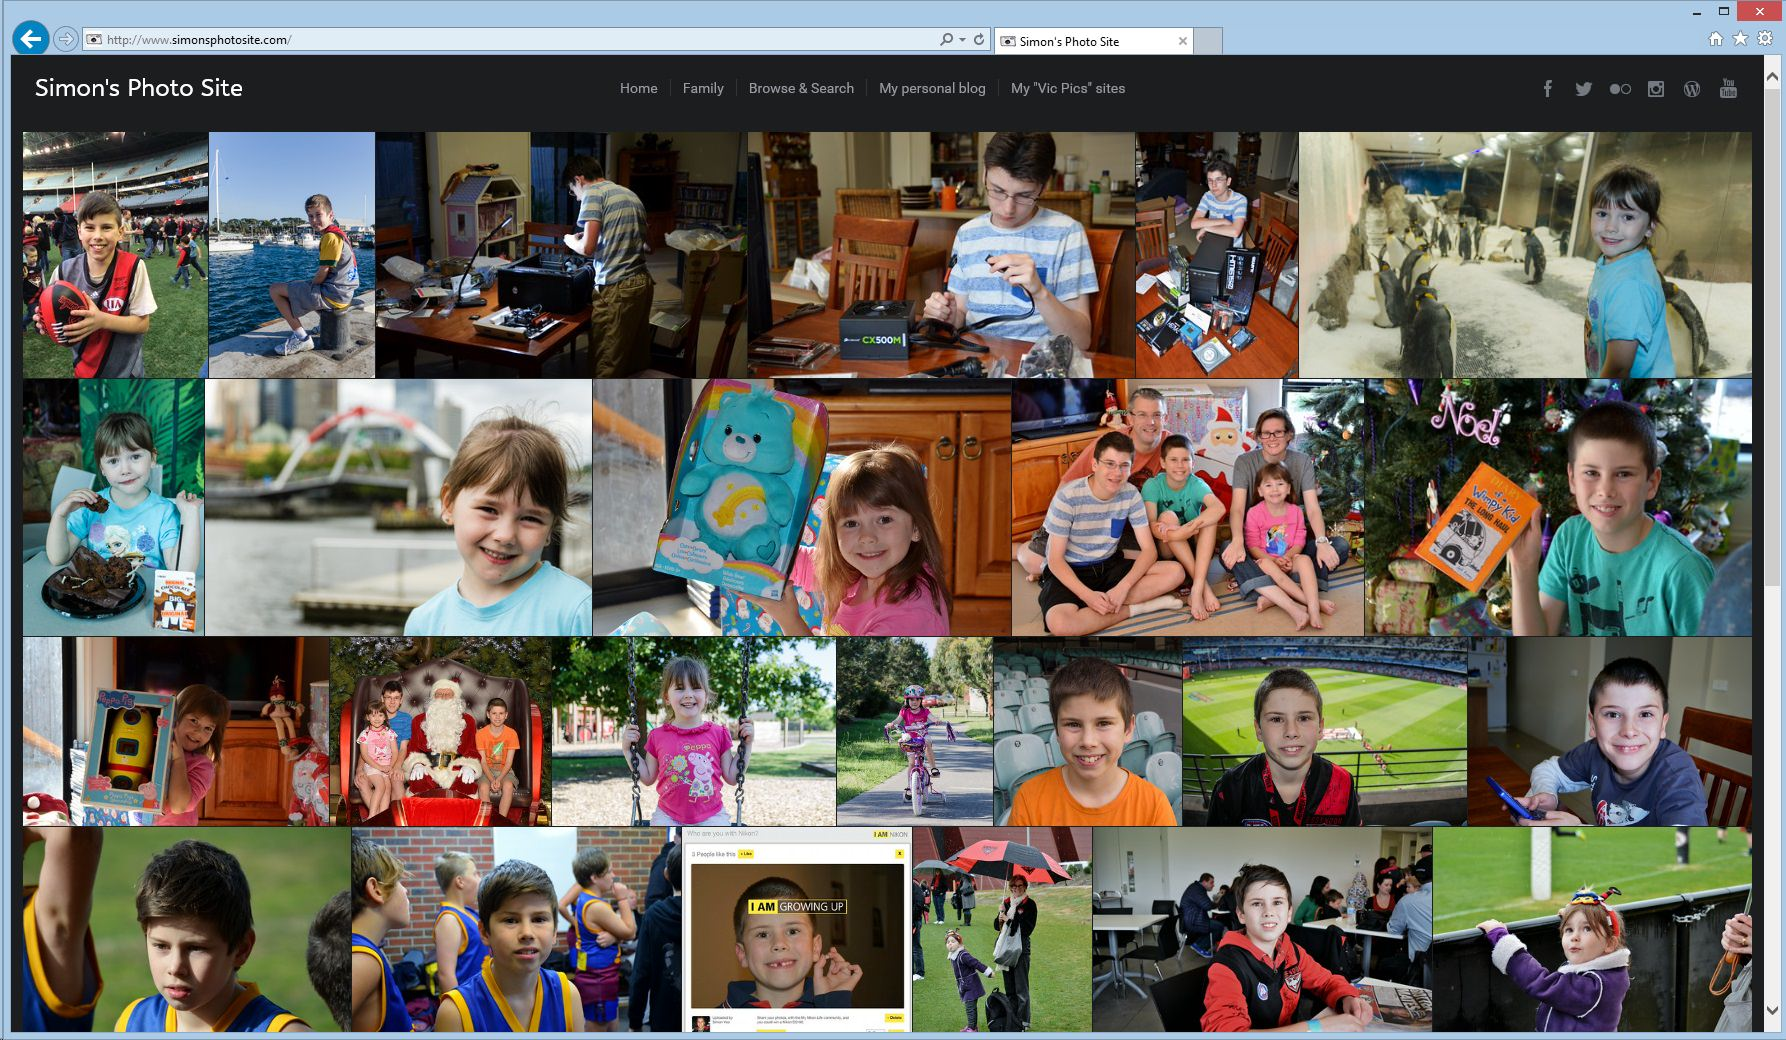 Simon's Photo Site homepage screenshot